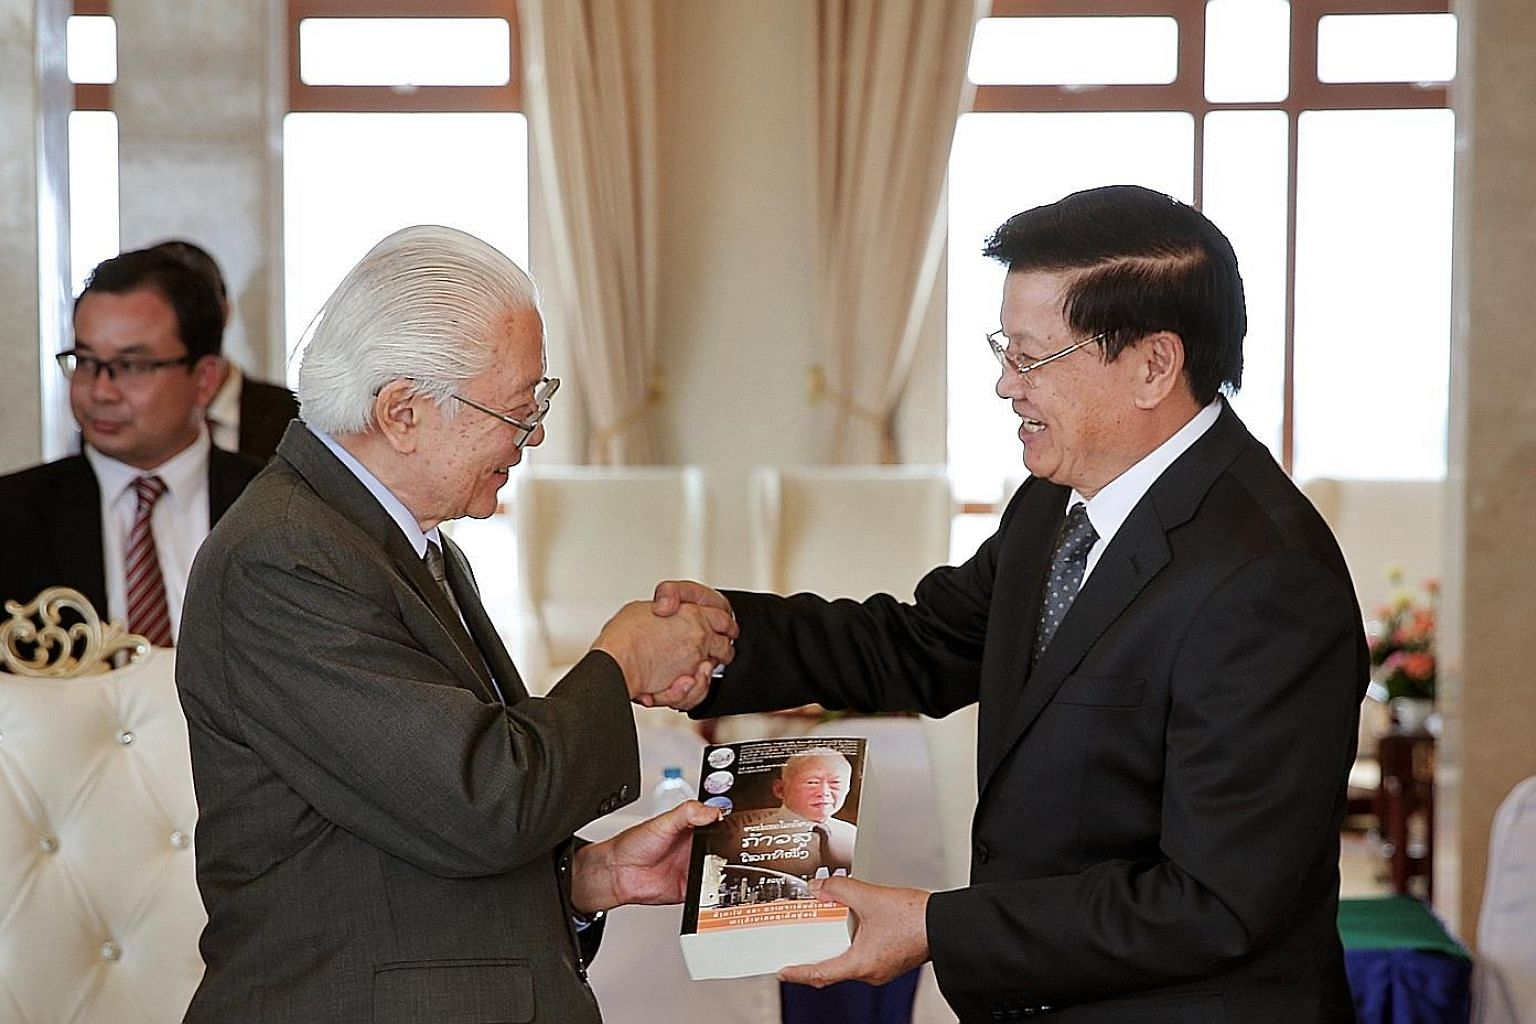 Dr Tan presenting a Lao edition of the book, From Third World To First: The Singapore Story From 1965 To 2000, which was written by founding prime minister Lee Kuan Yew, to Mr Thongloun.